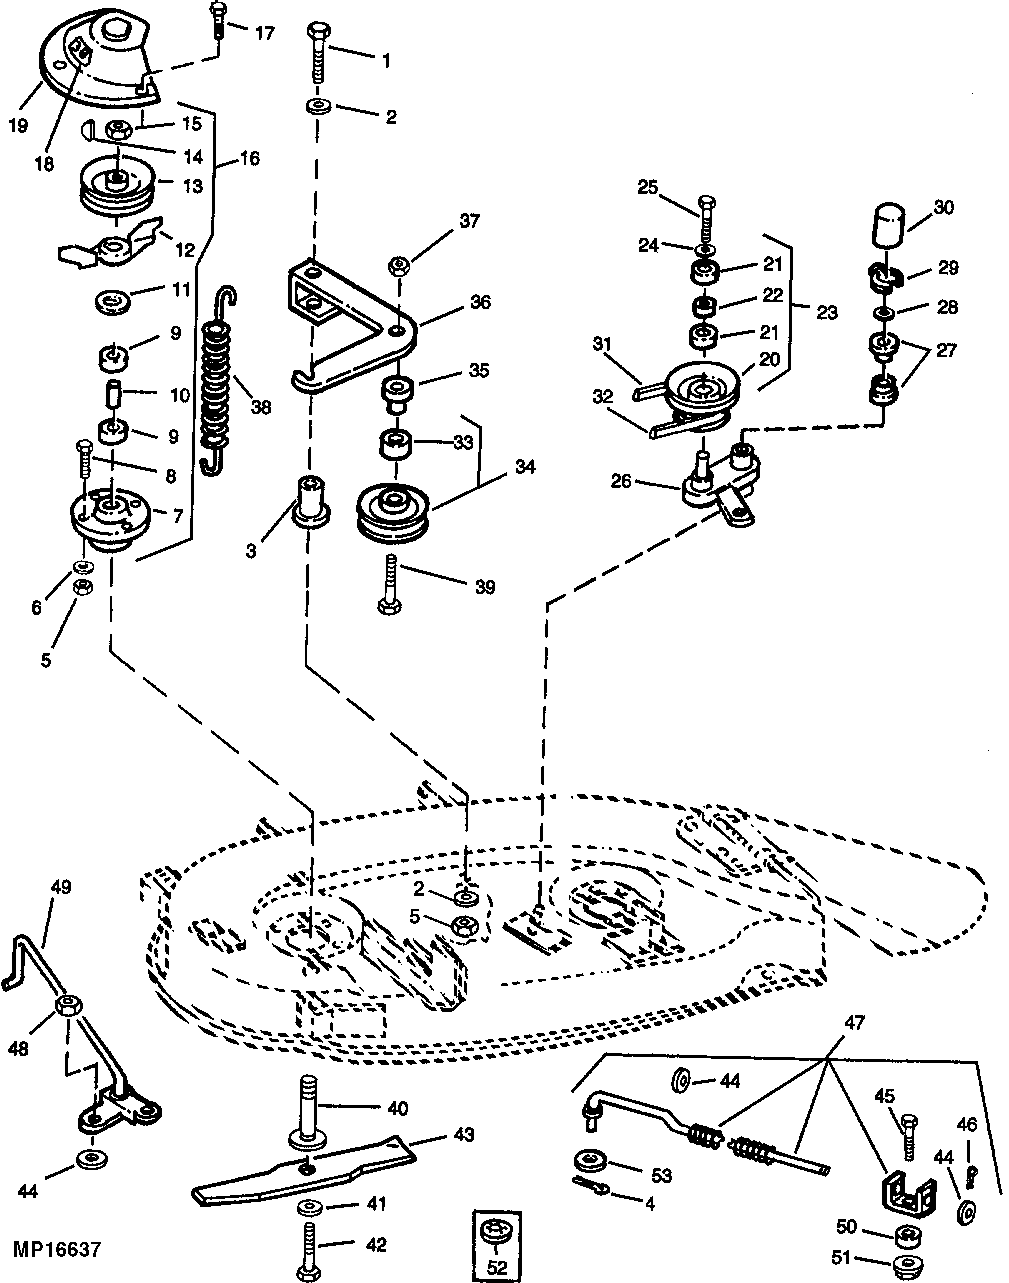 John deere lx178 transmission parts john tractor engine and John Deere STX30 Wiring-Diagram John Deere LX178 Engine John Deere La115 Wiring Diagram on john deere lx178 wiring diagram